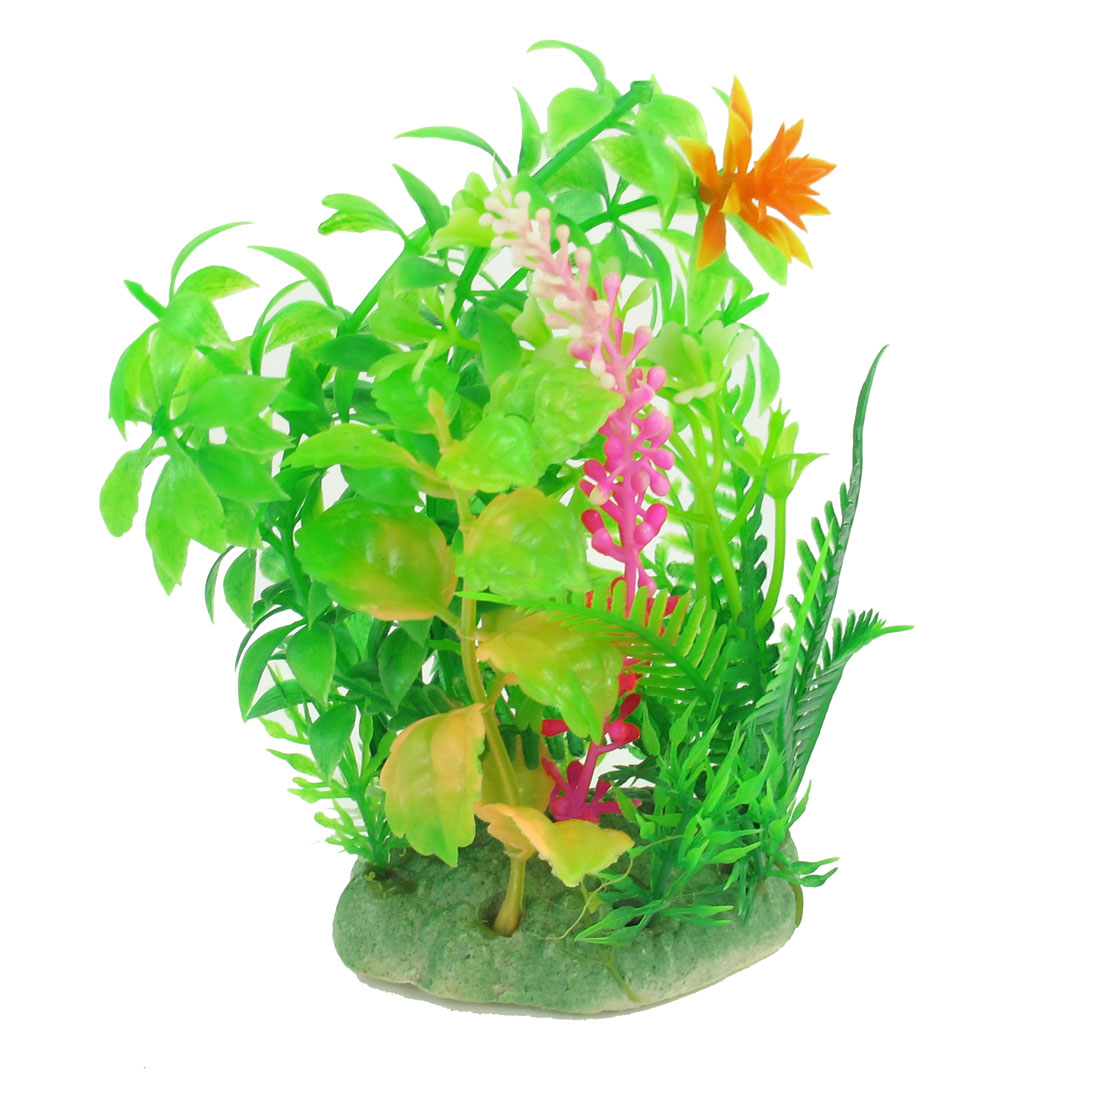 "5.1"" High Aquarium Landscaping Manmade Water Flower Plant Green Fuchsia"